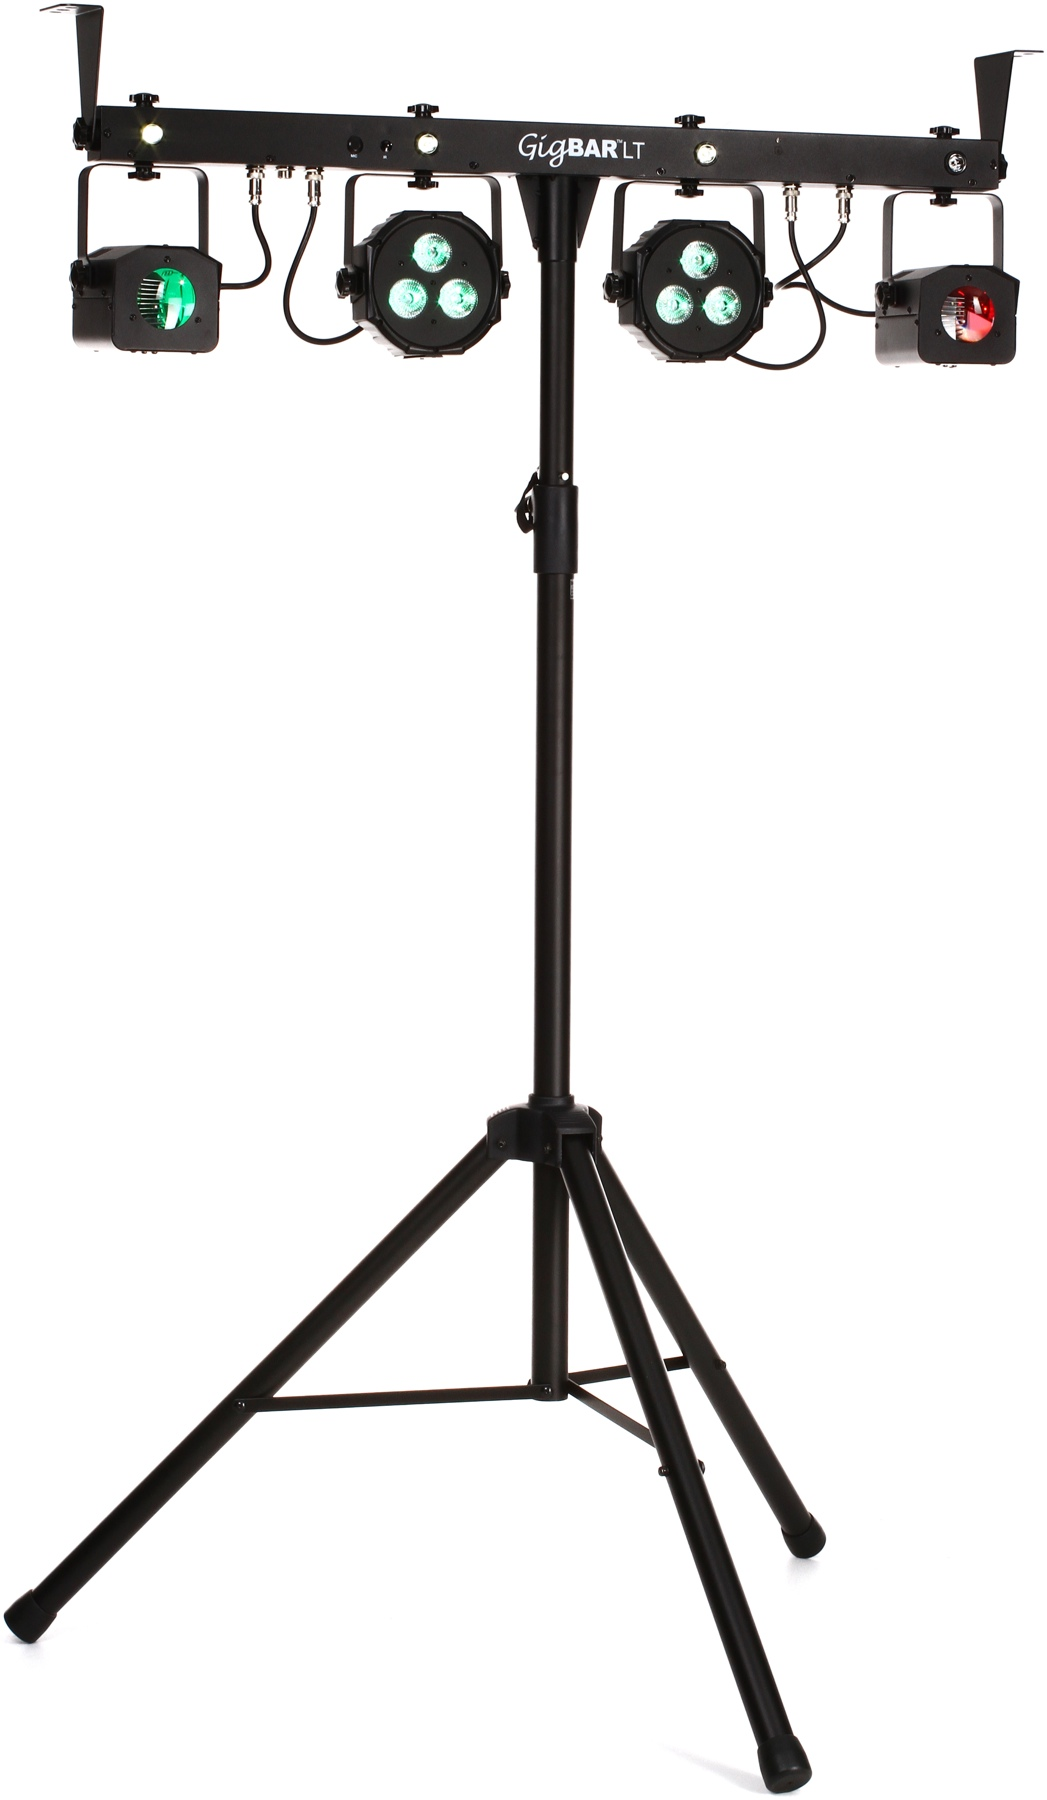 Chauvet Gigbarlt 3 In 1 Led Lighting Fixture Package With